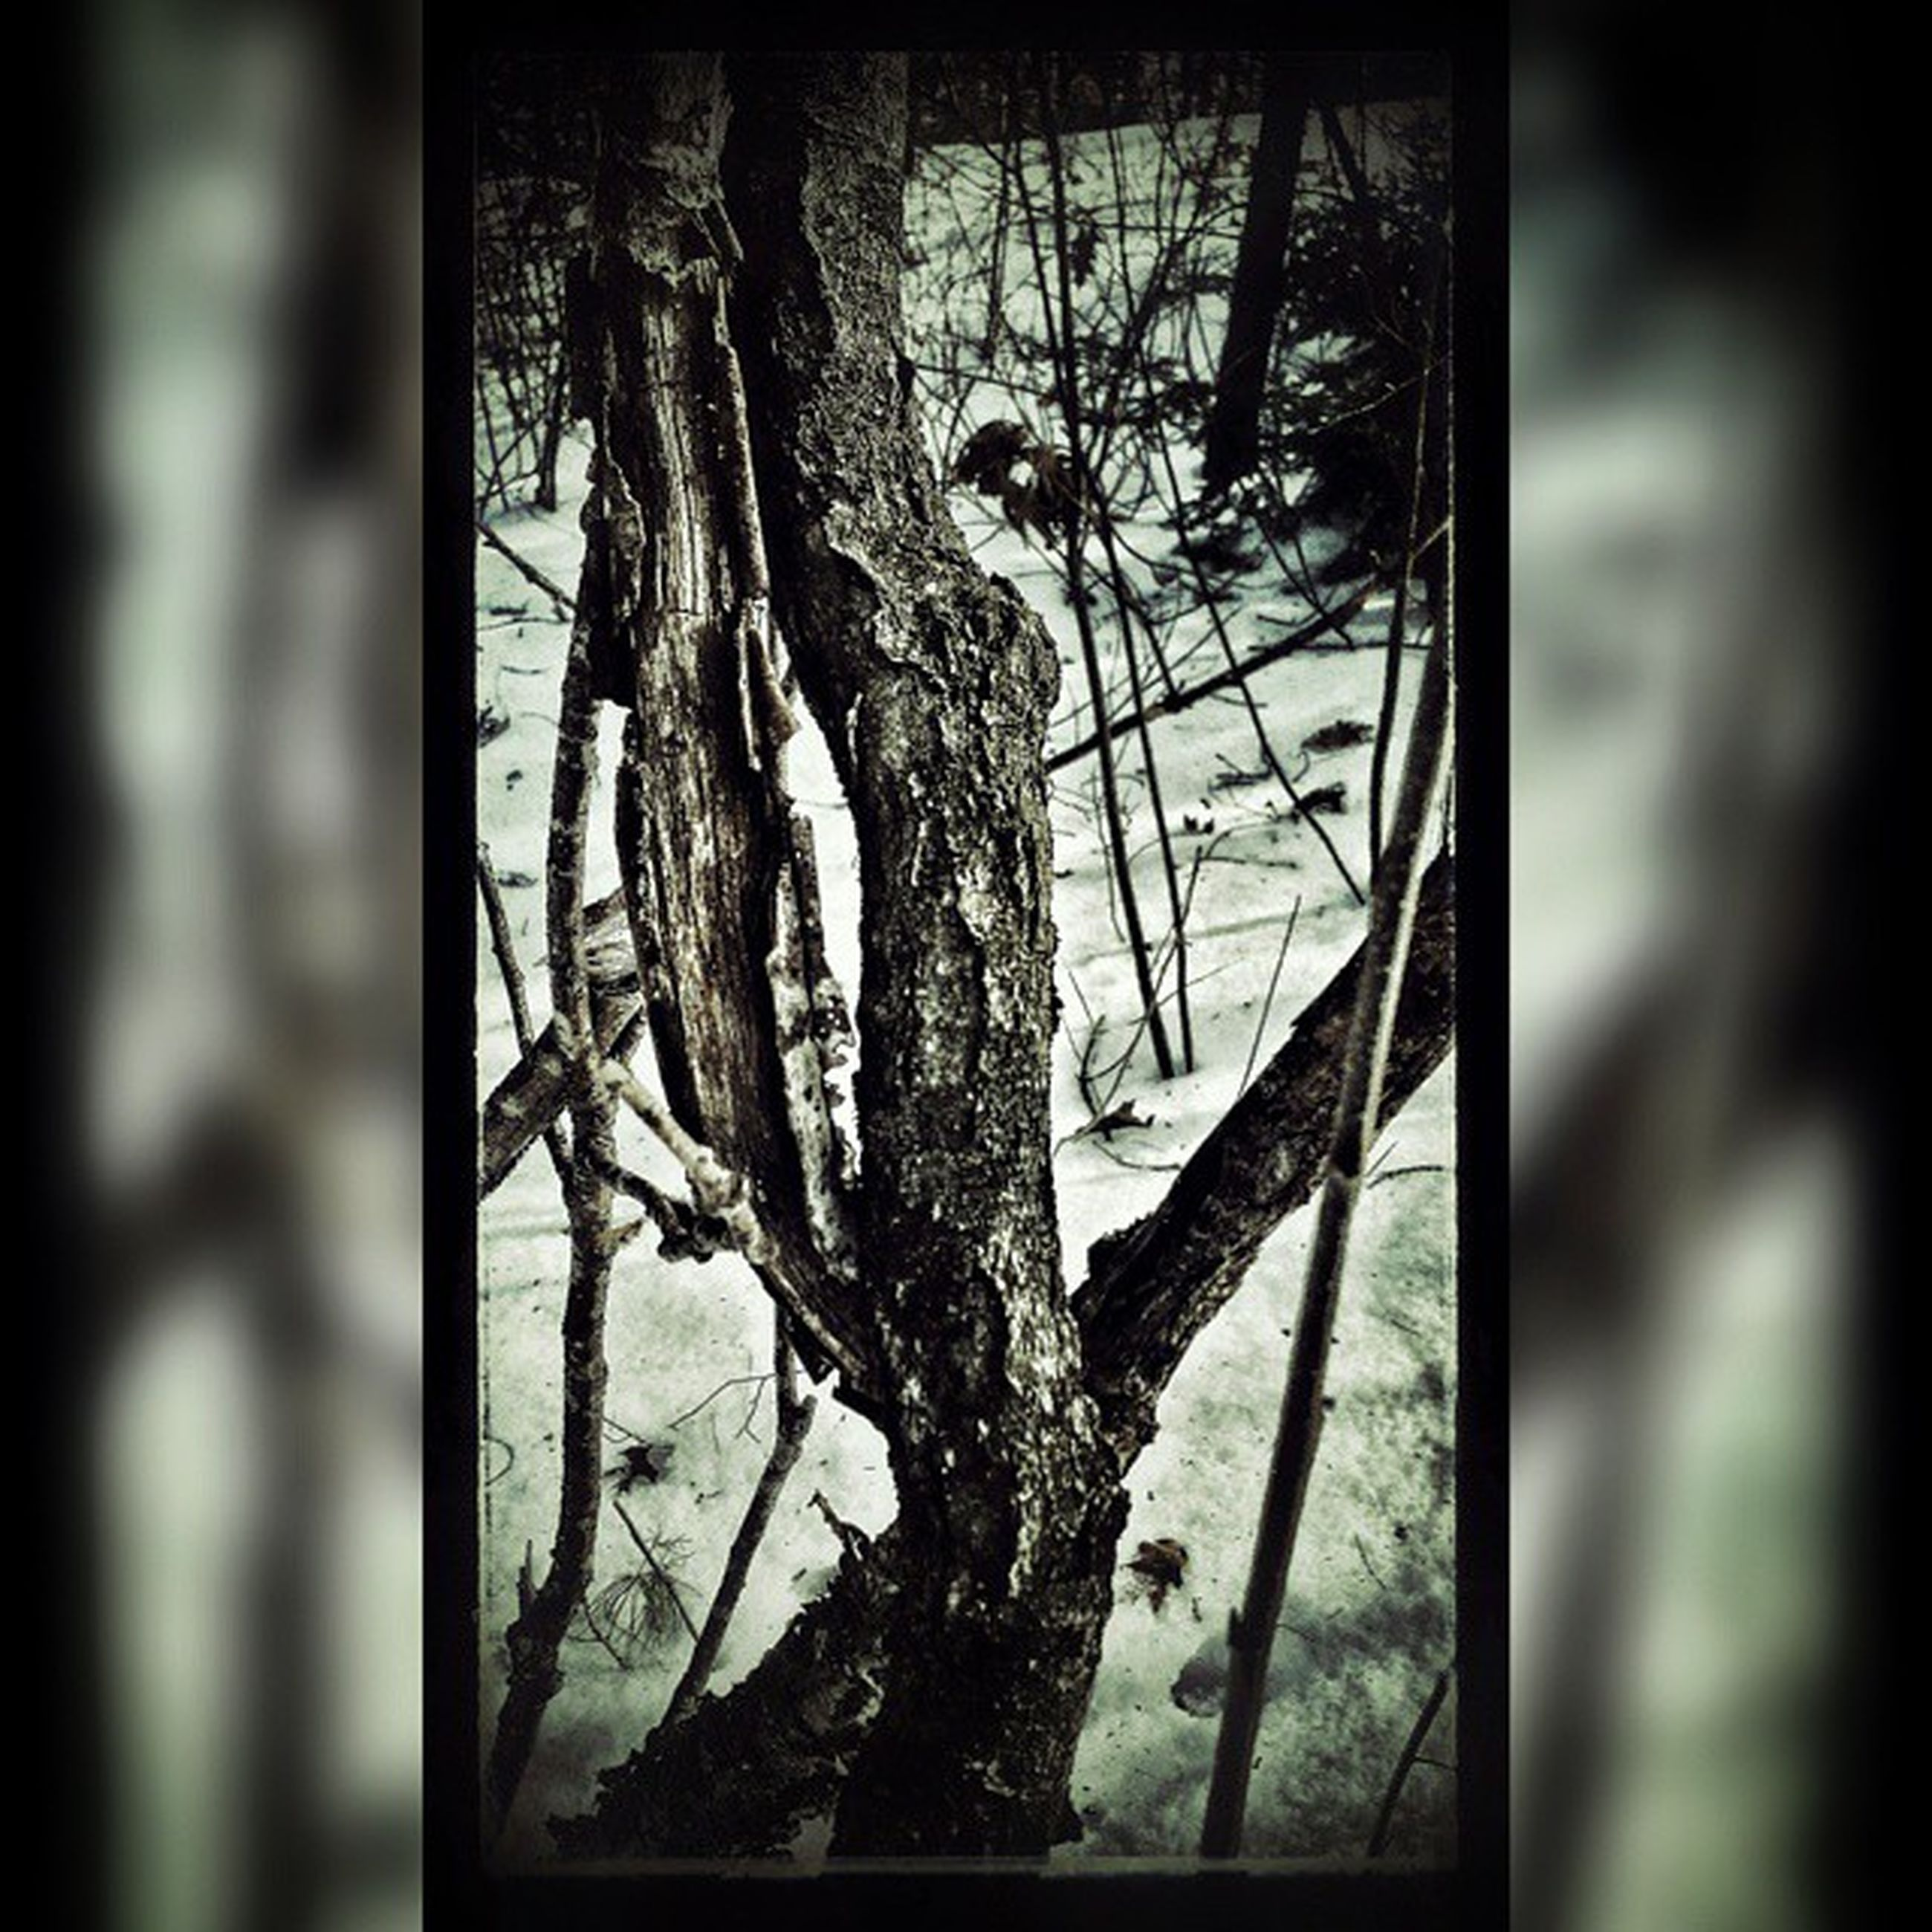 indoors, window, glass - material, tree, tree trunk, close-up, branch, home interior, auto post production filter, broken, transparent, day, abandoned, transfer print, no people, bare tree, damaged, wood - material, hanging, sunlight